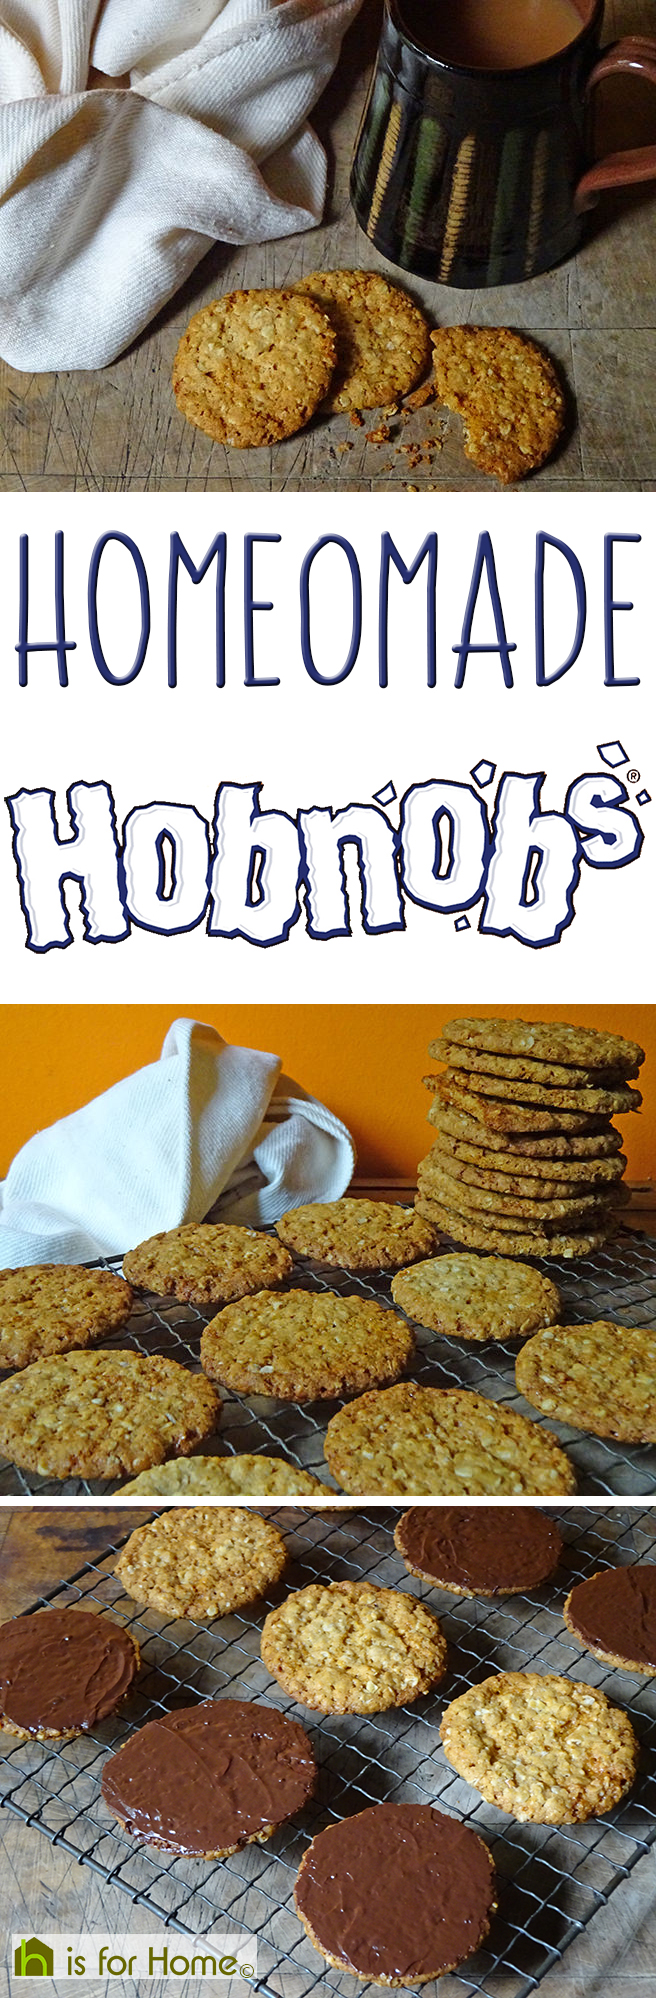 Here's how to make your own delicious Hobnobs!  #recipe #biscuits #cookies #baking #cooking #cookery